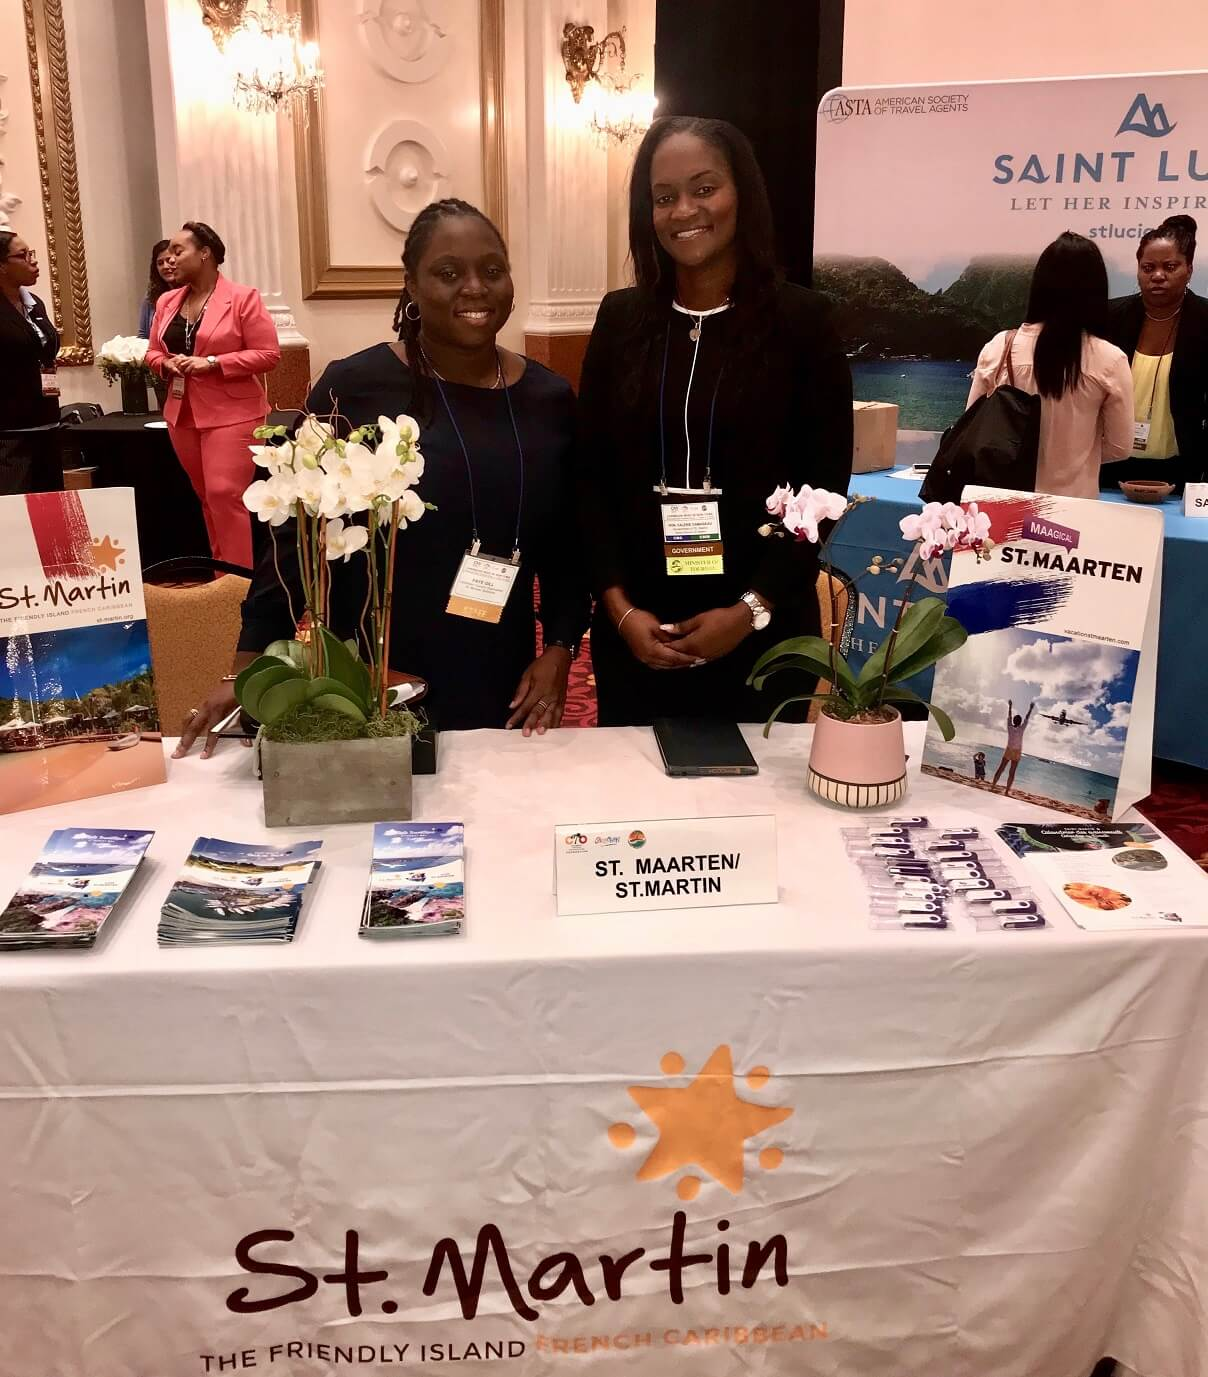 St. Martin shines at CTO's Caribbean Week in New York City